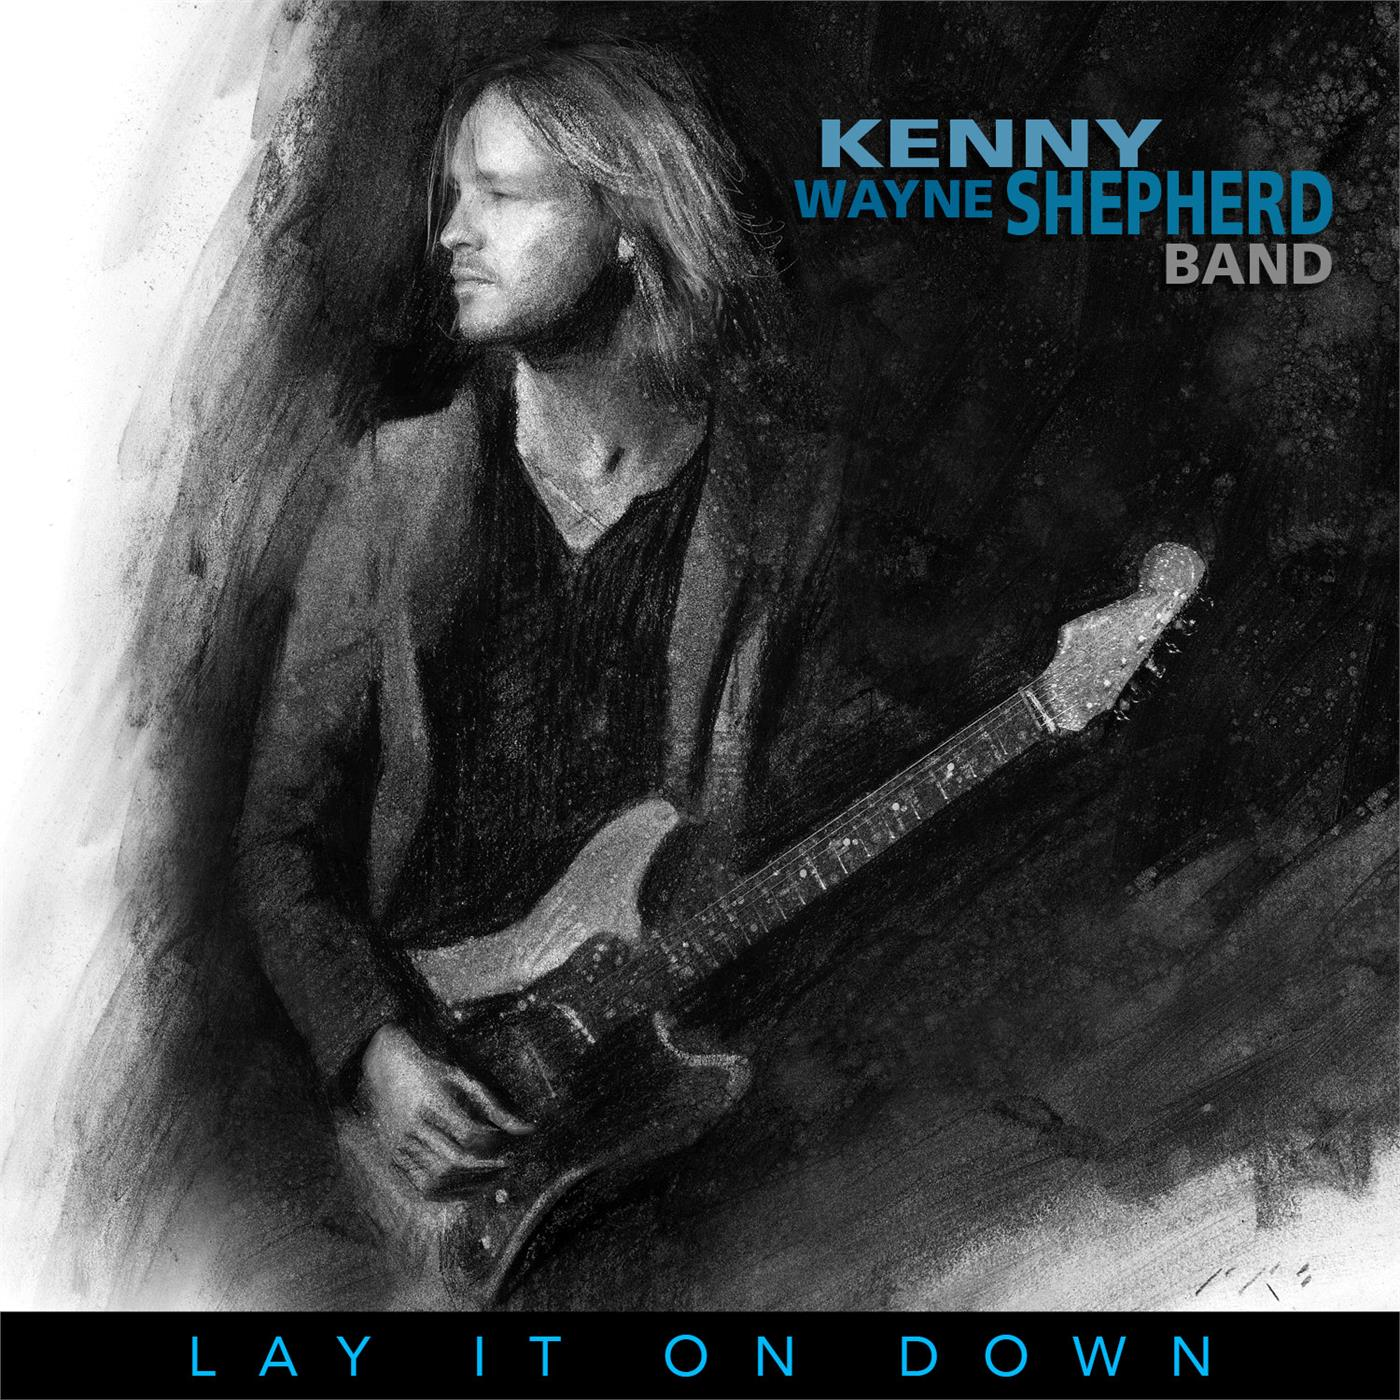 0819873015017 Mascot/Provogue  Kenny Wayne Shepherd Lay It On Down (LP)